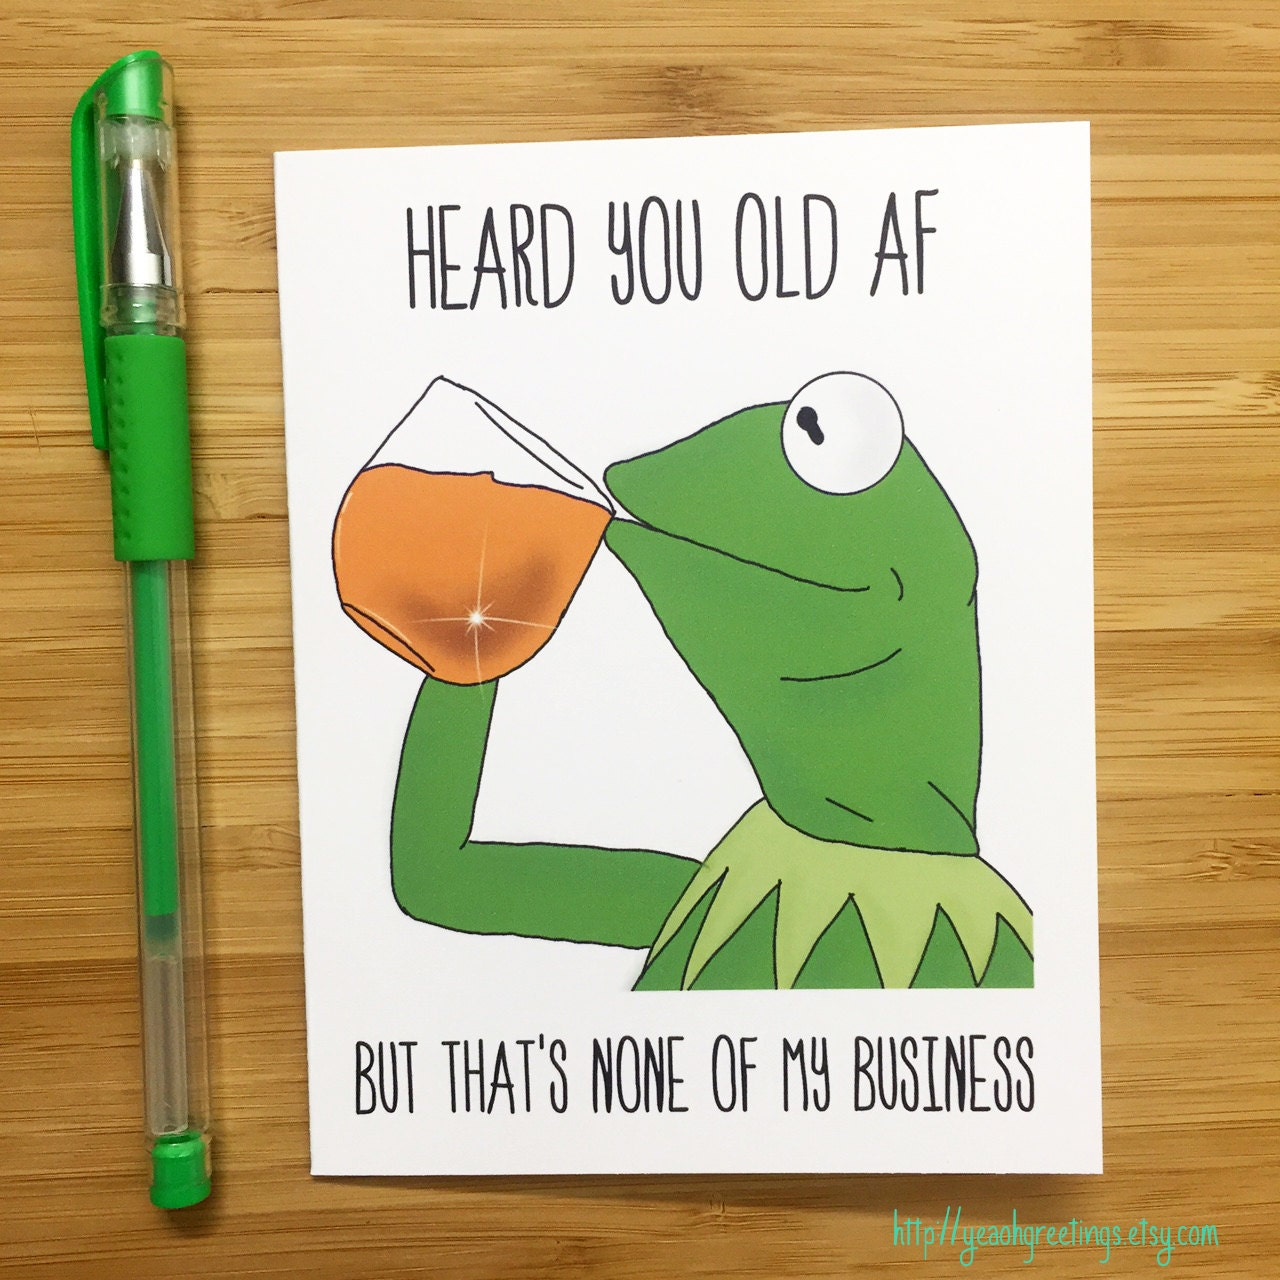 Funny Birthday Card Kermit the Frog Kermit Muppets Meme – Comical Birthday Greetings